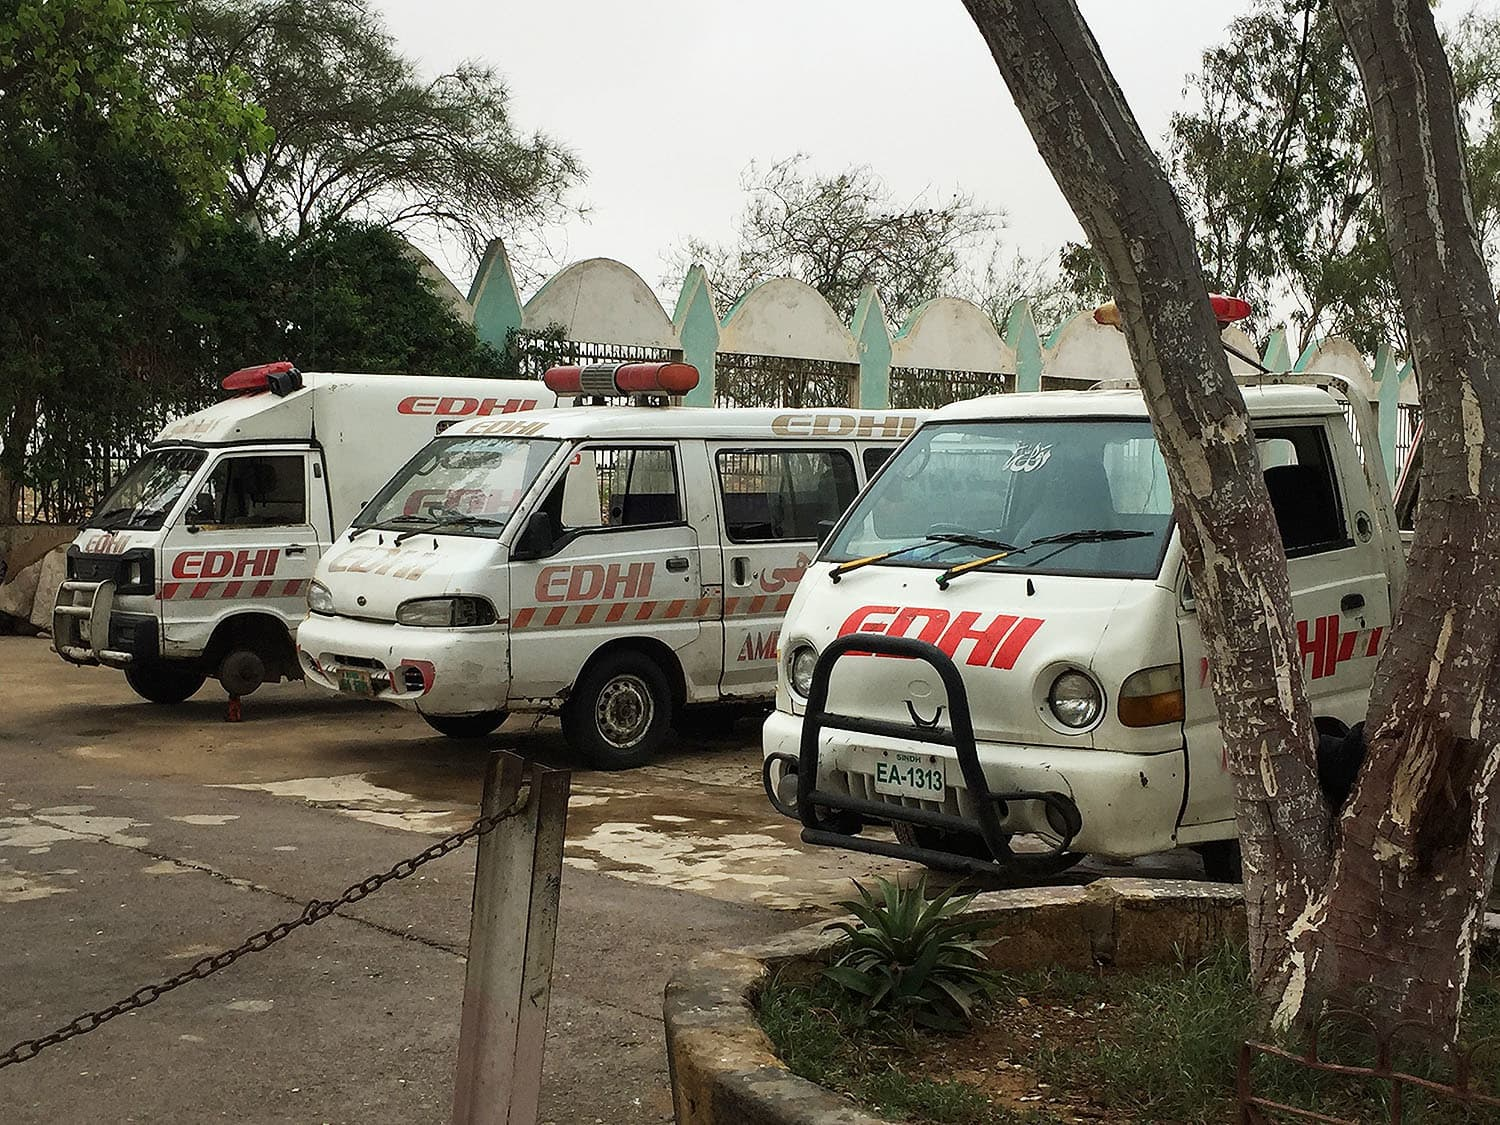 Edhi ambulances.